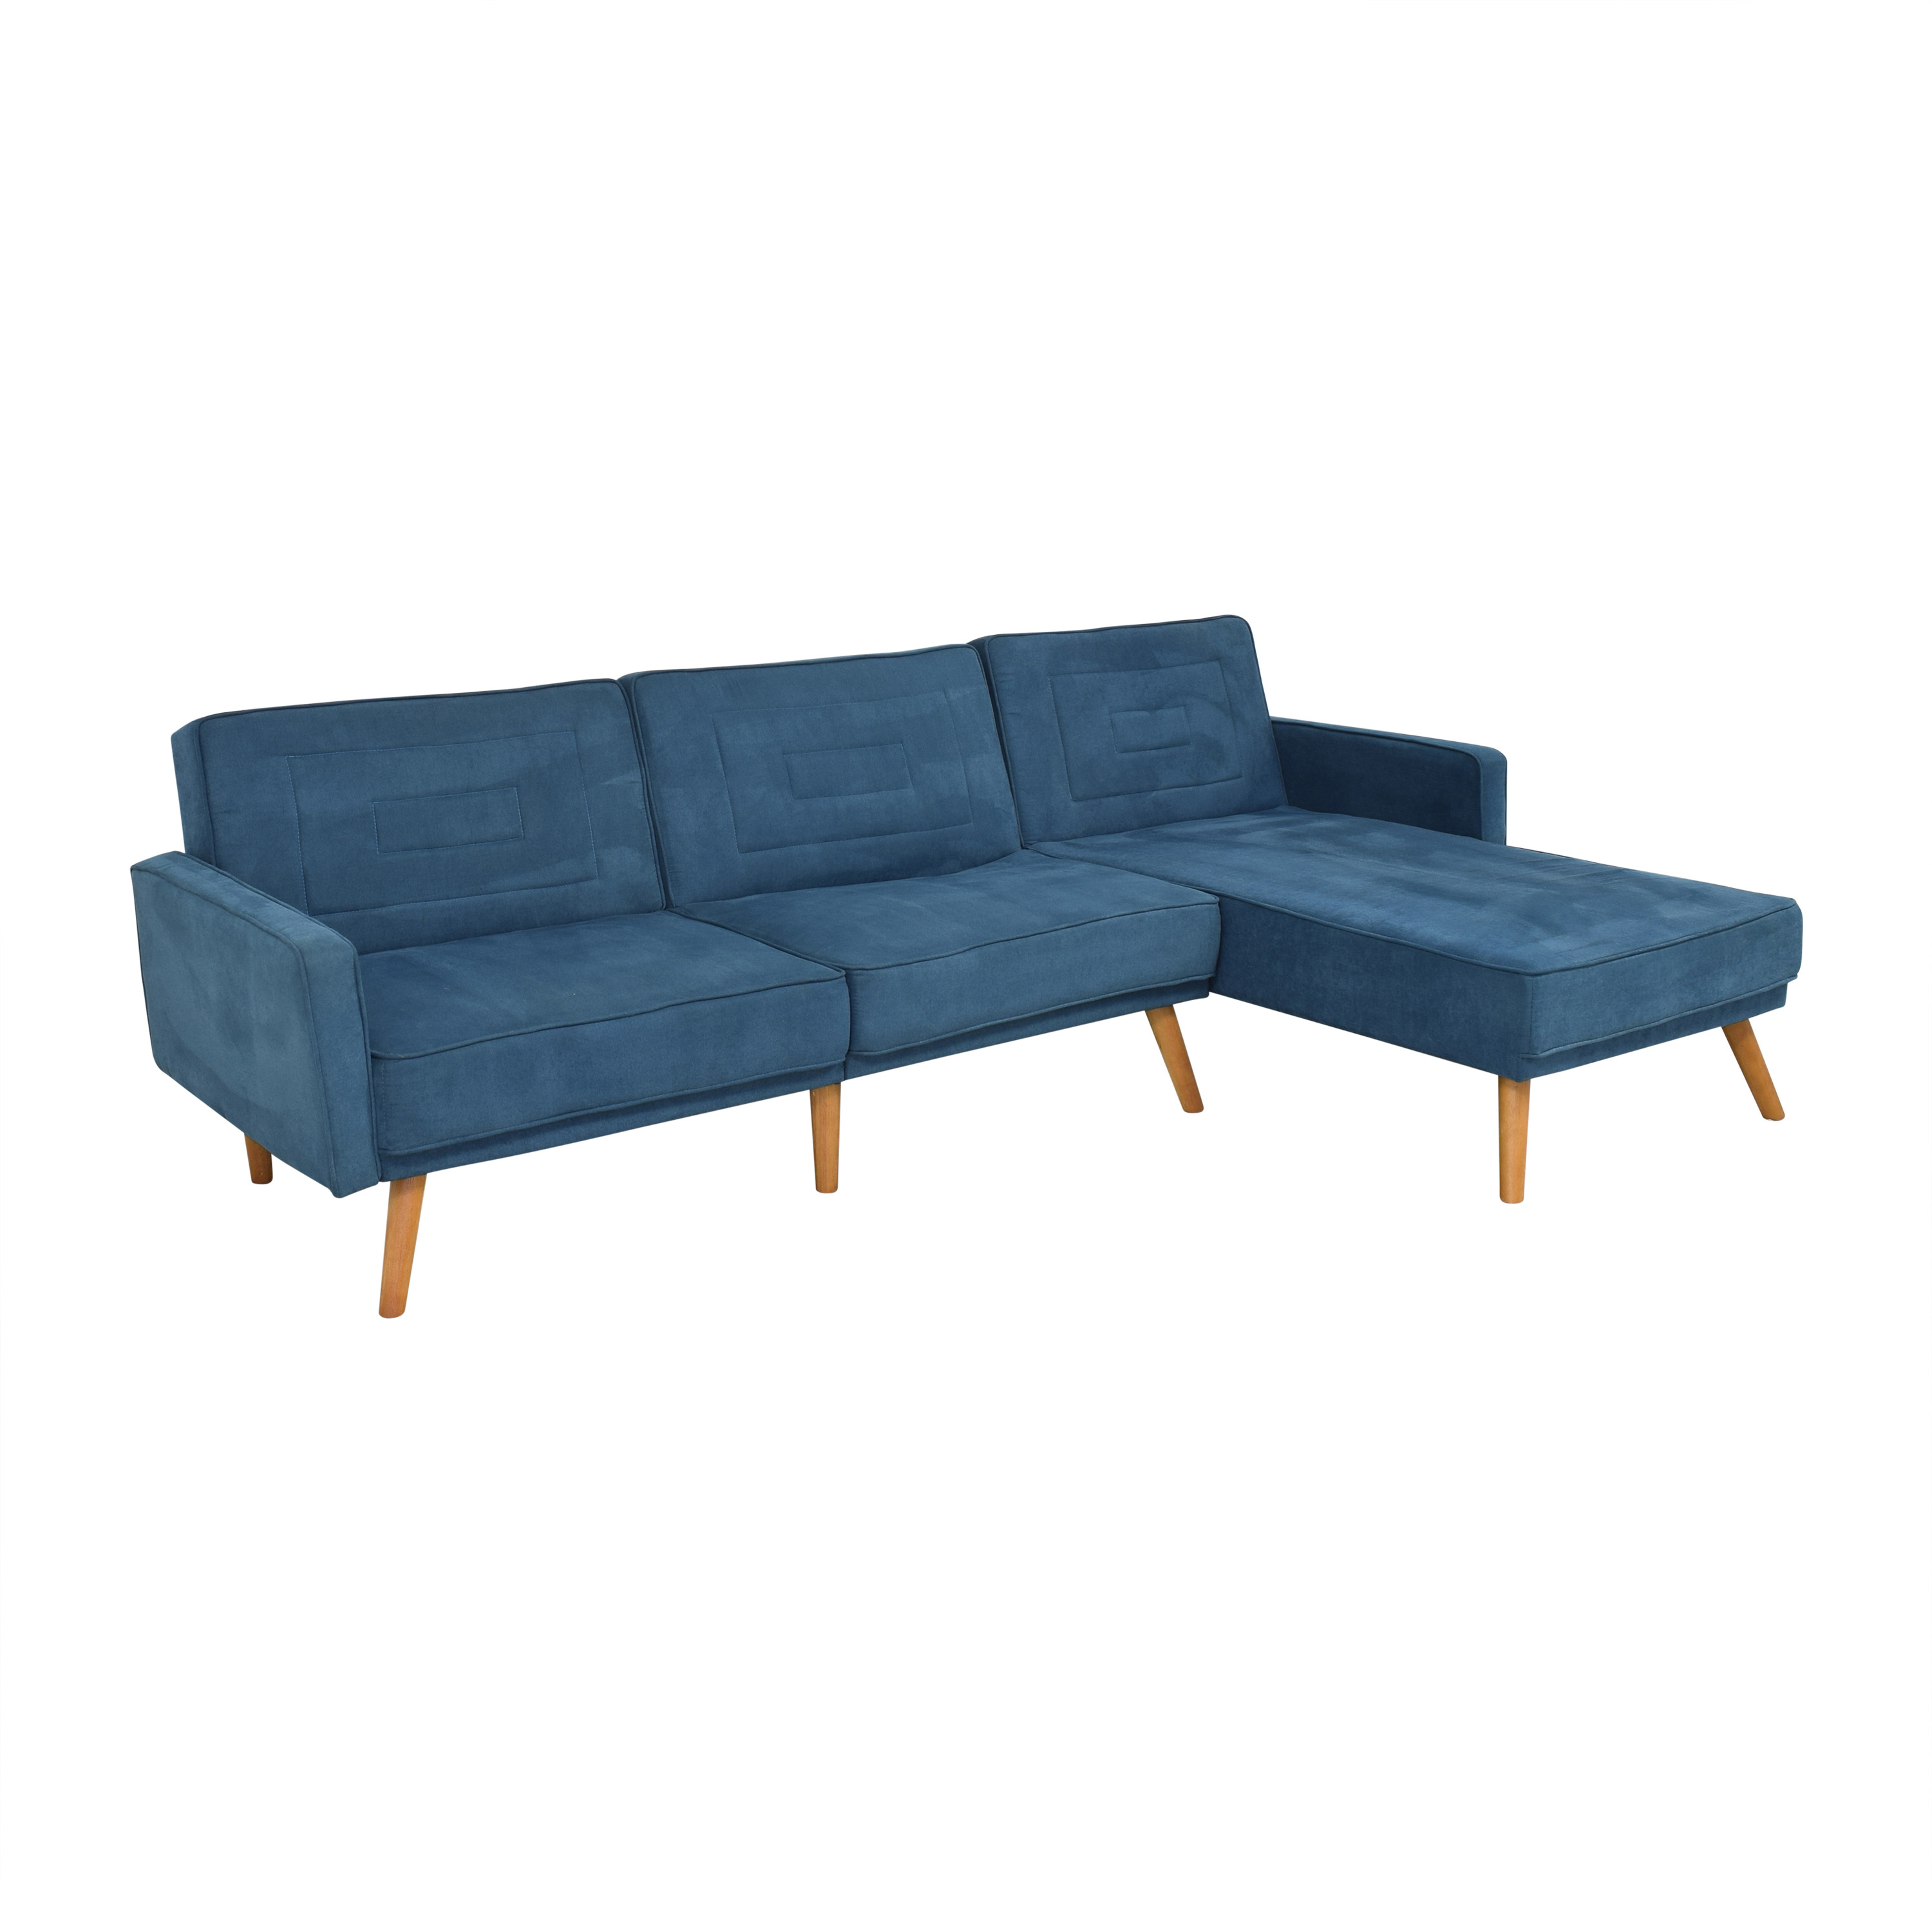 buy Macy's Gold Sparrow Ventura Convertible Sectional Sofa Bed Macy's Sectionals